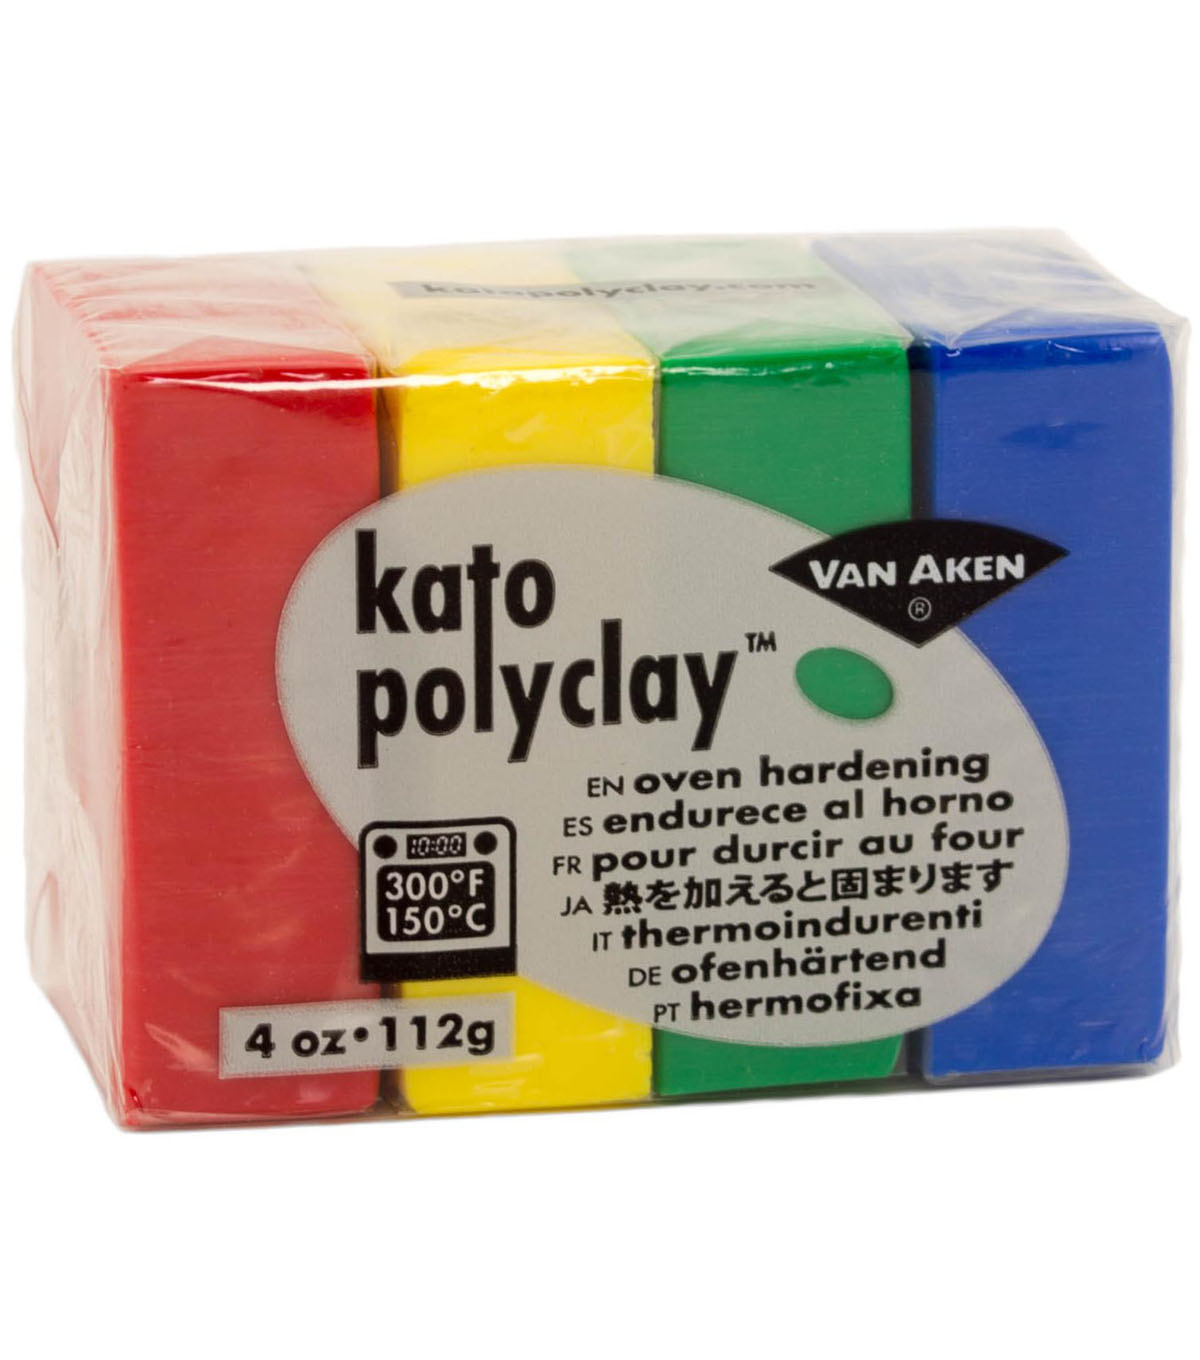 Van Aken Kato Polyclay 4 oz. Oven Hardening Set-Red, Yellow & Green